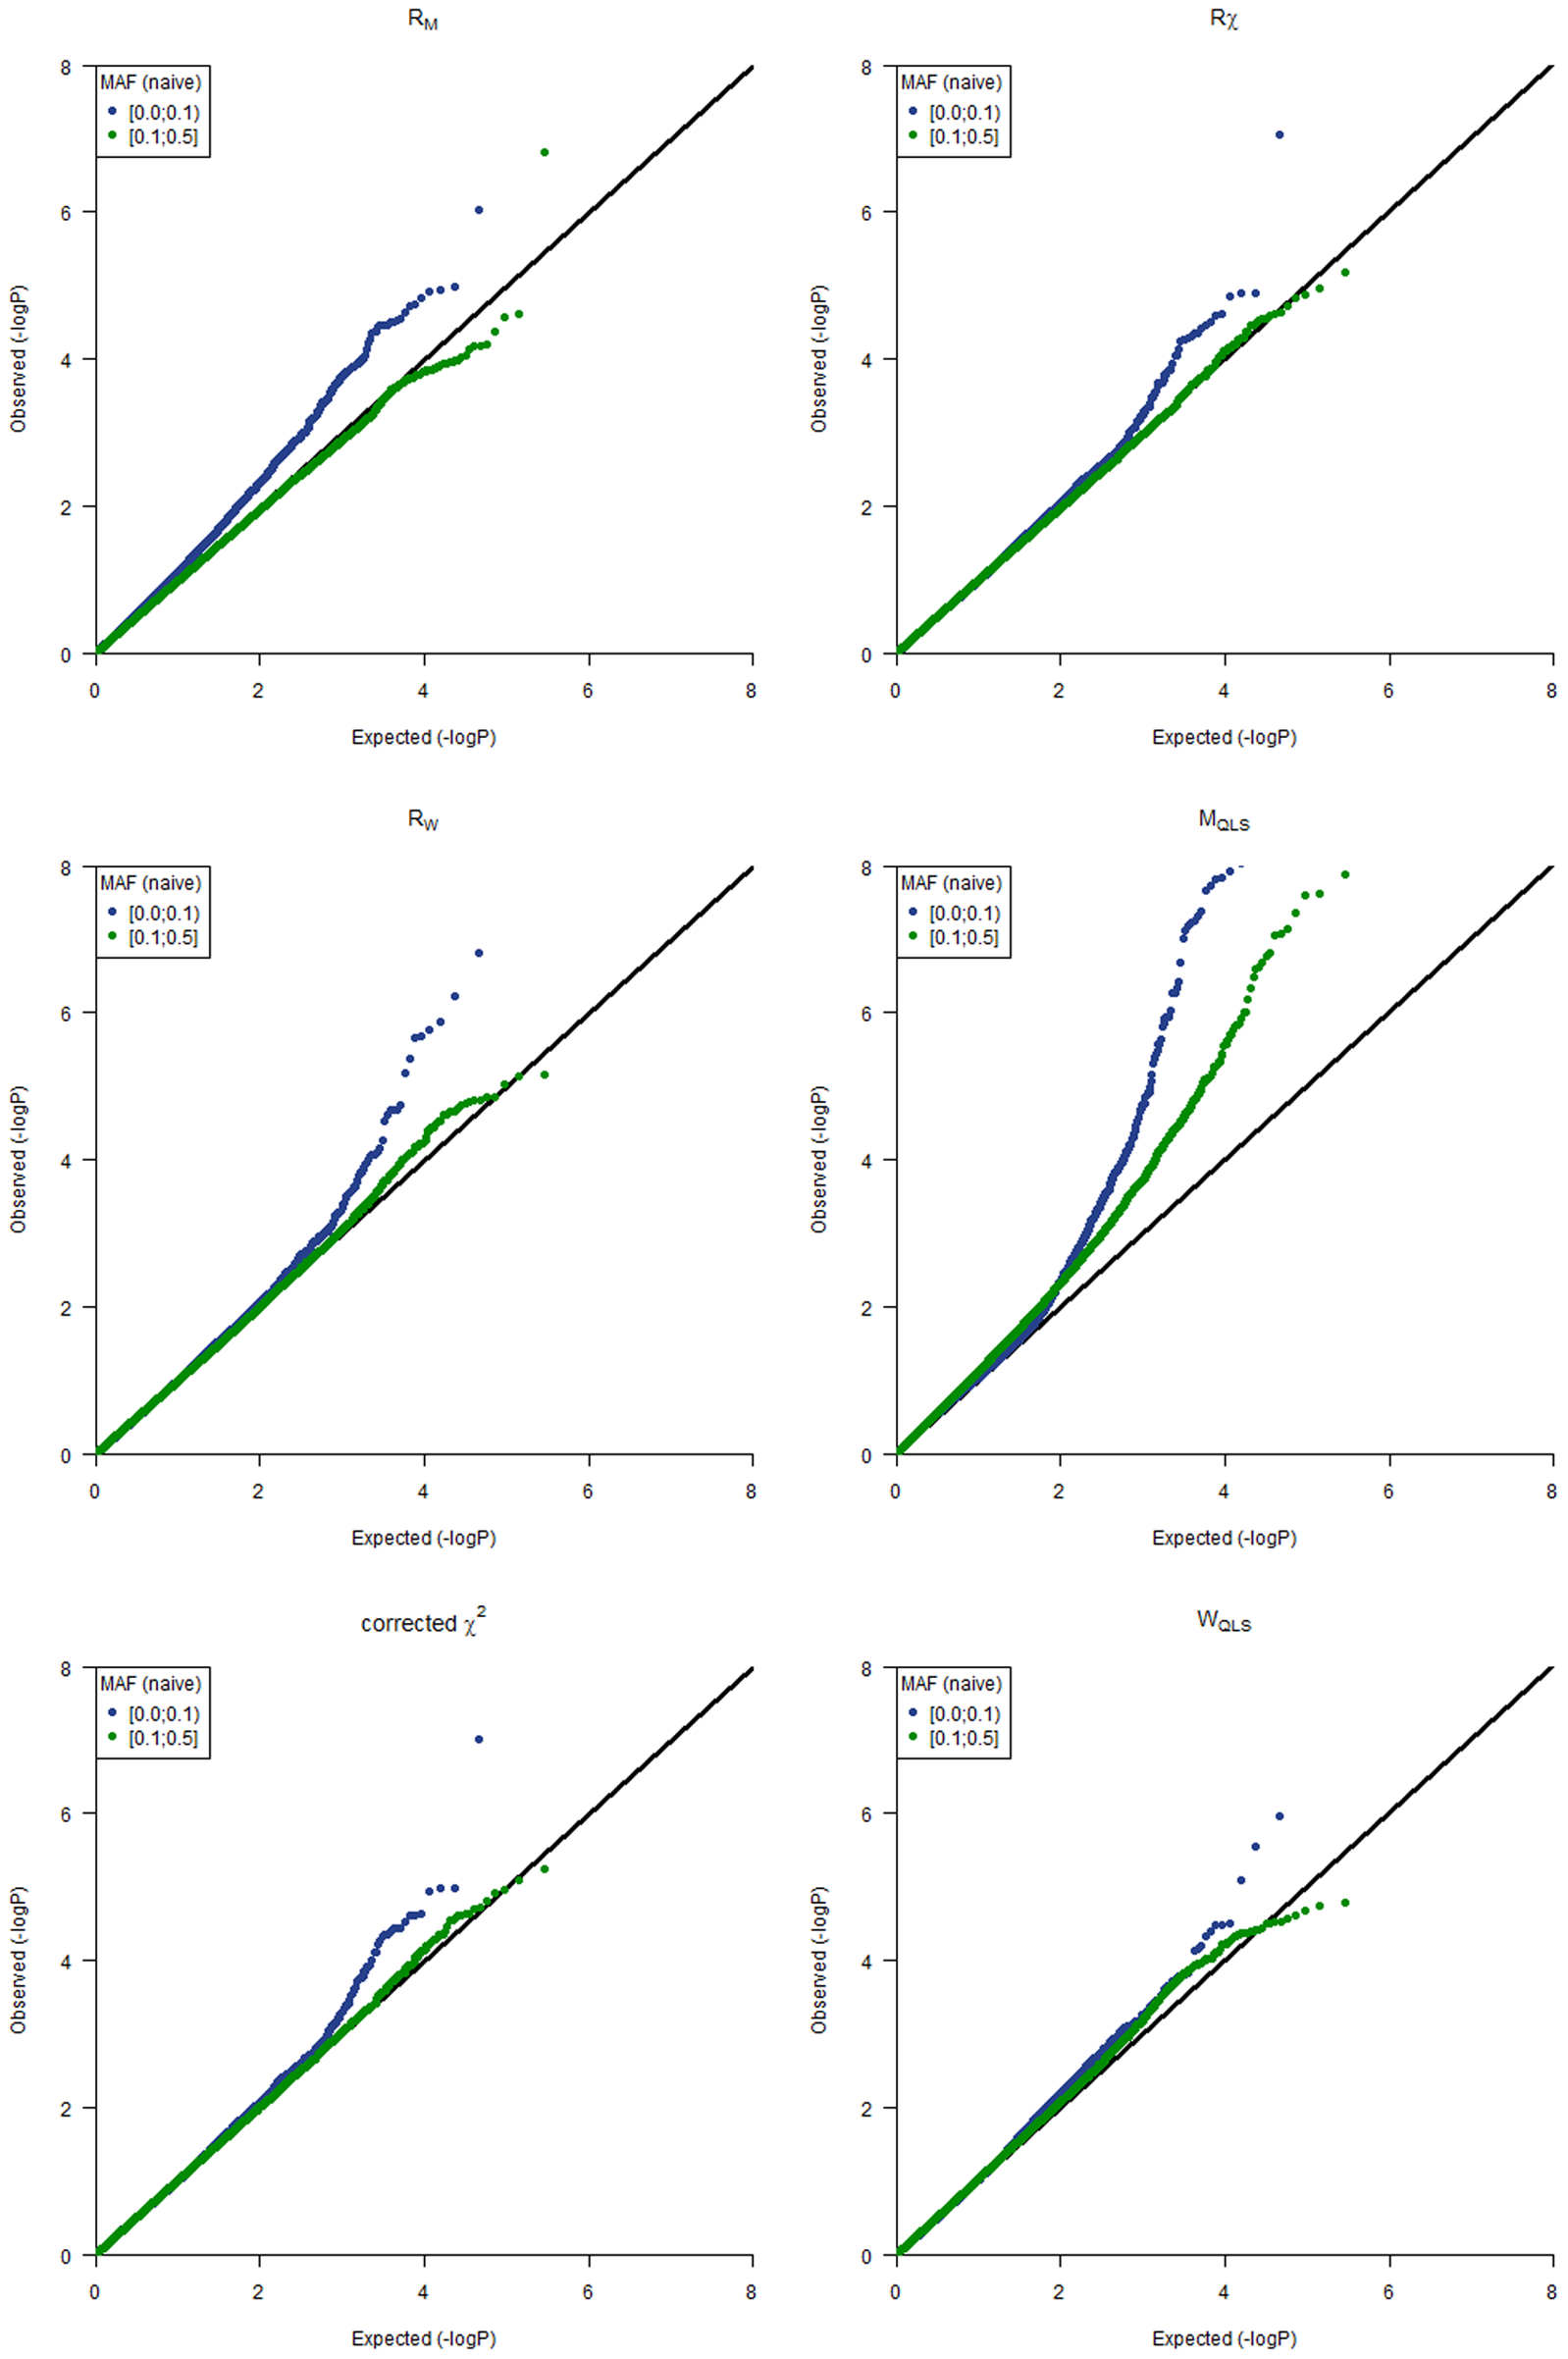 Q-Q plots for the different test statistics used in the analyses.